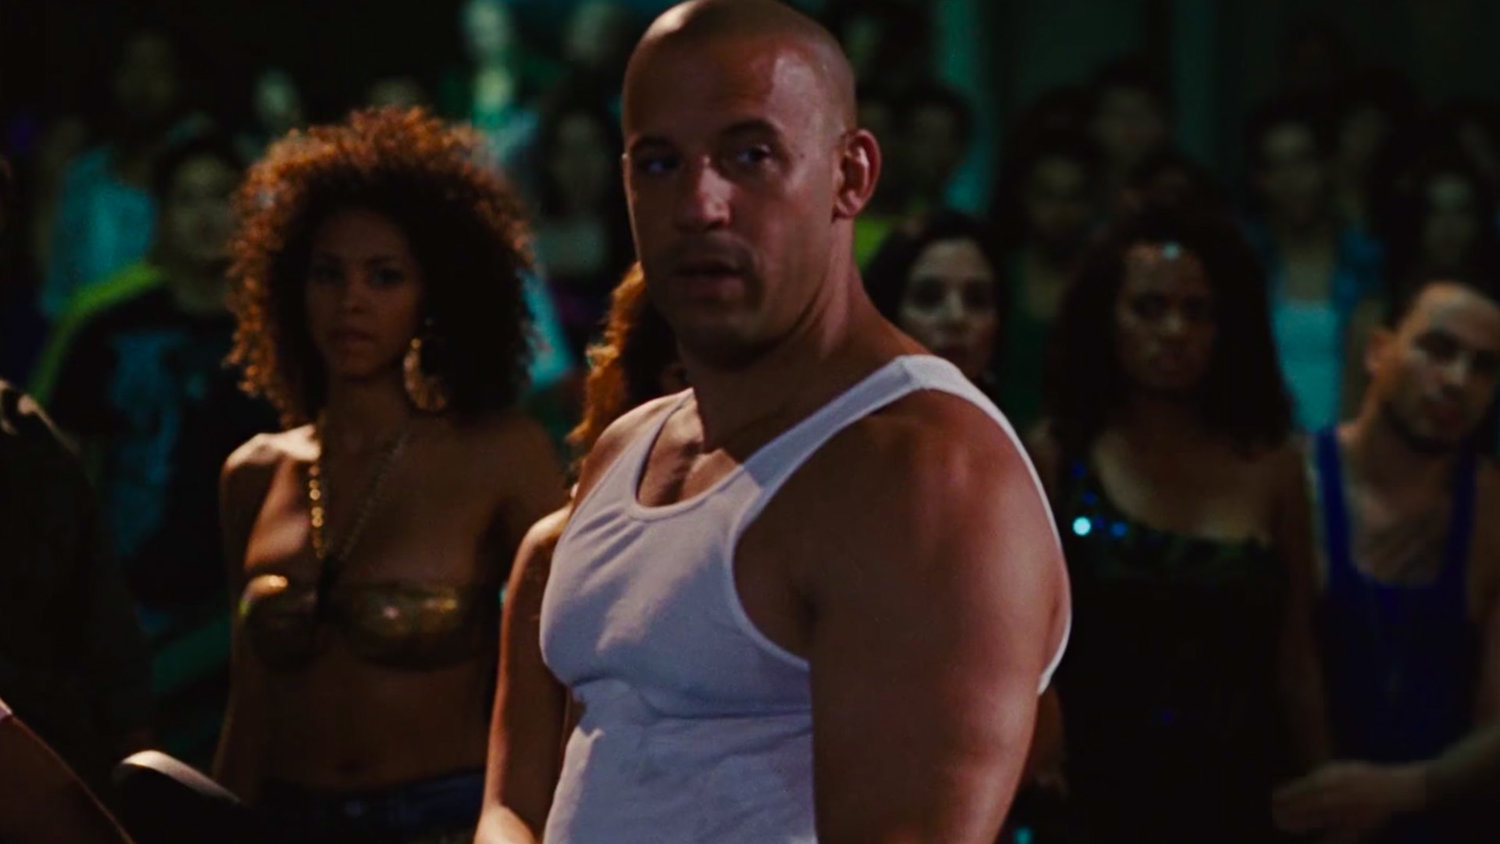 Catch Up with the FAST & FURIOUS Saga in Less Than Seven Minutes